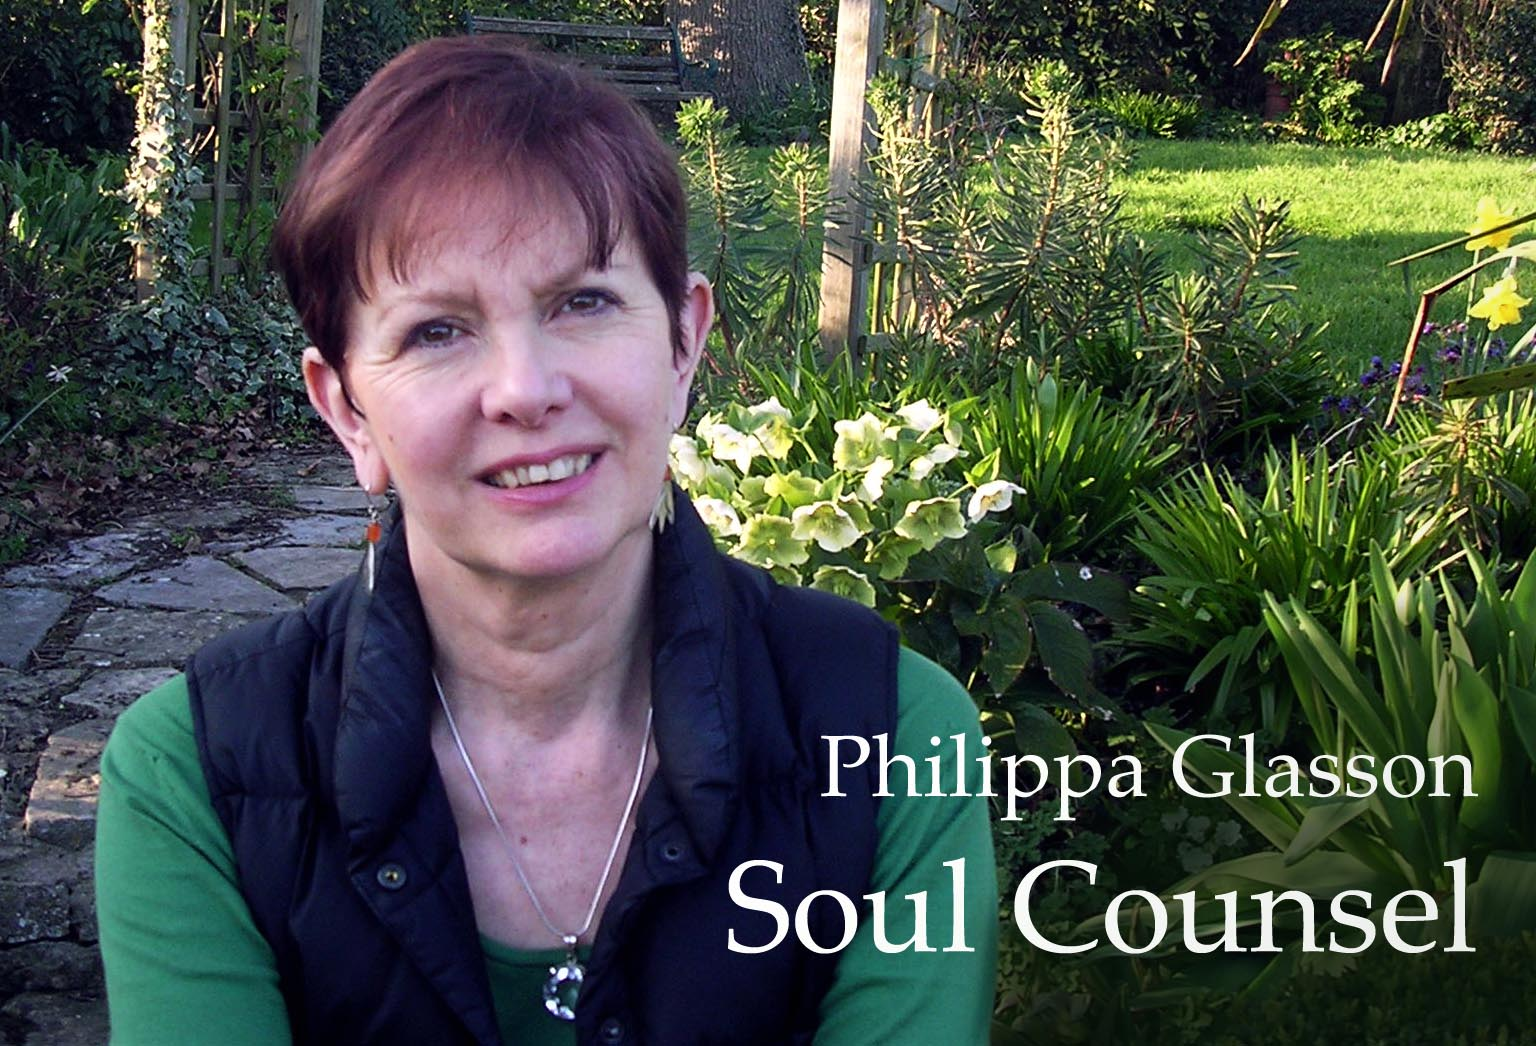 Philippa Soul Counsel